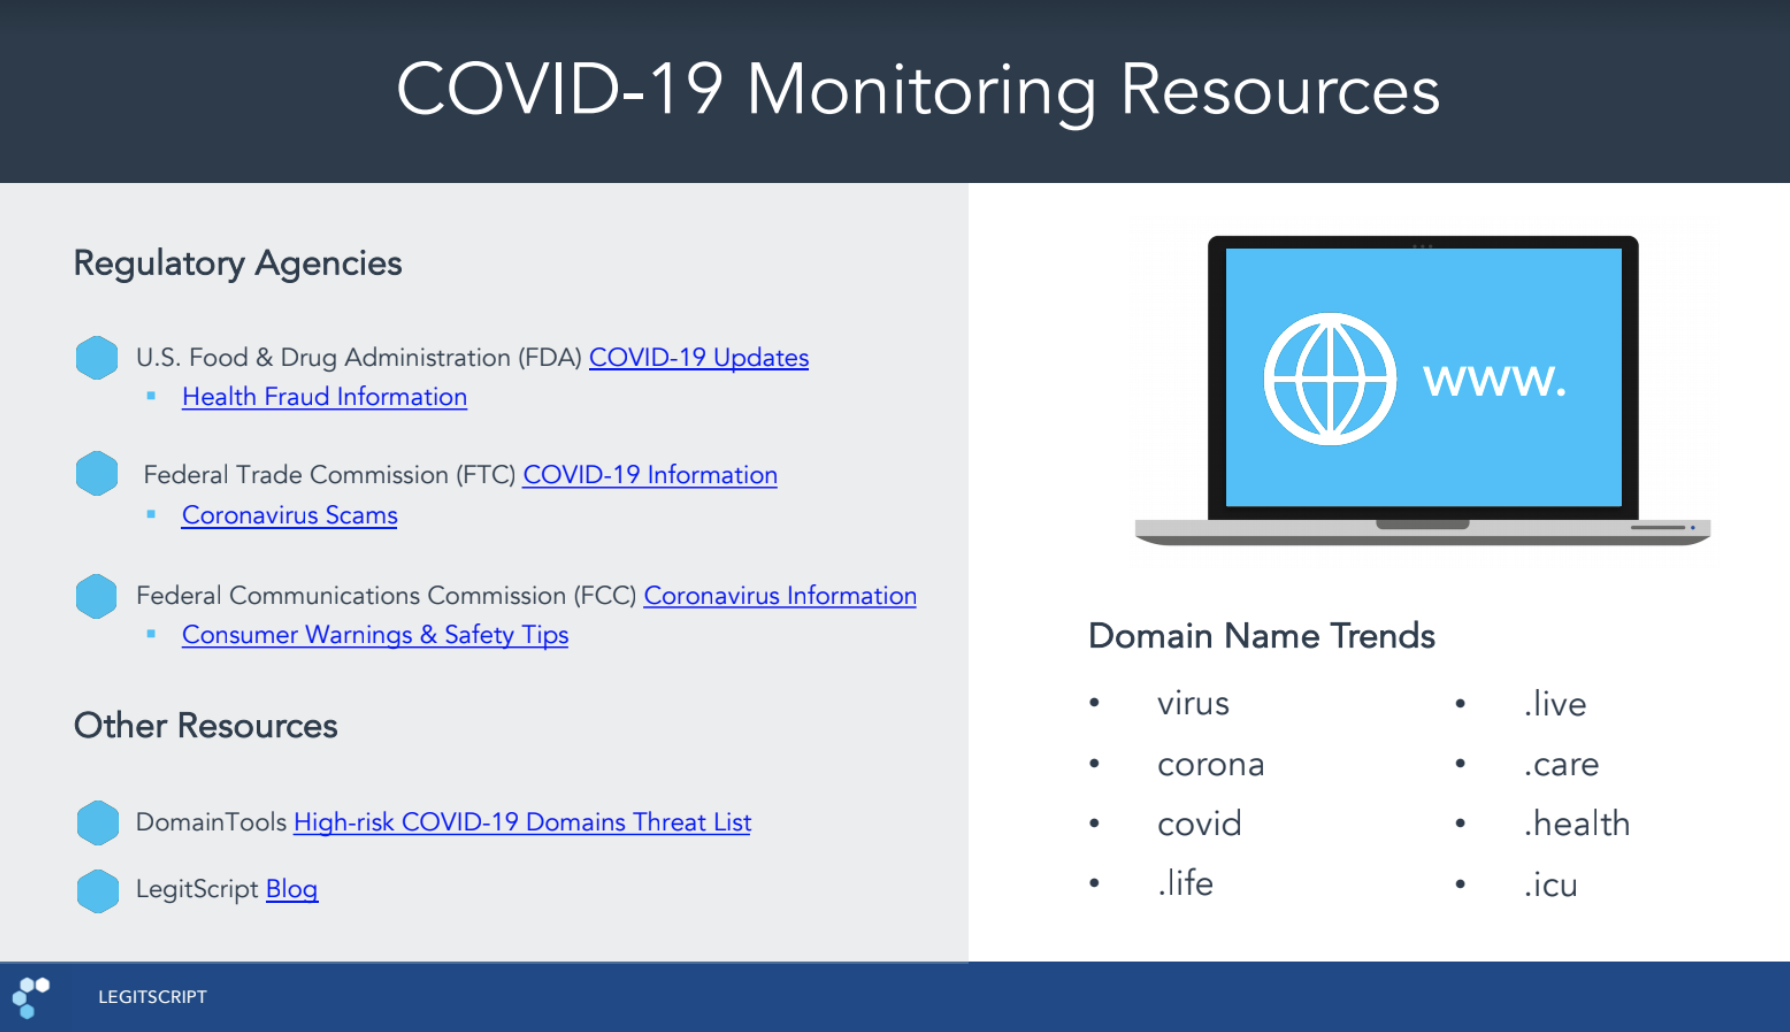 slide listing resources for COVID-19